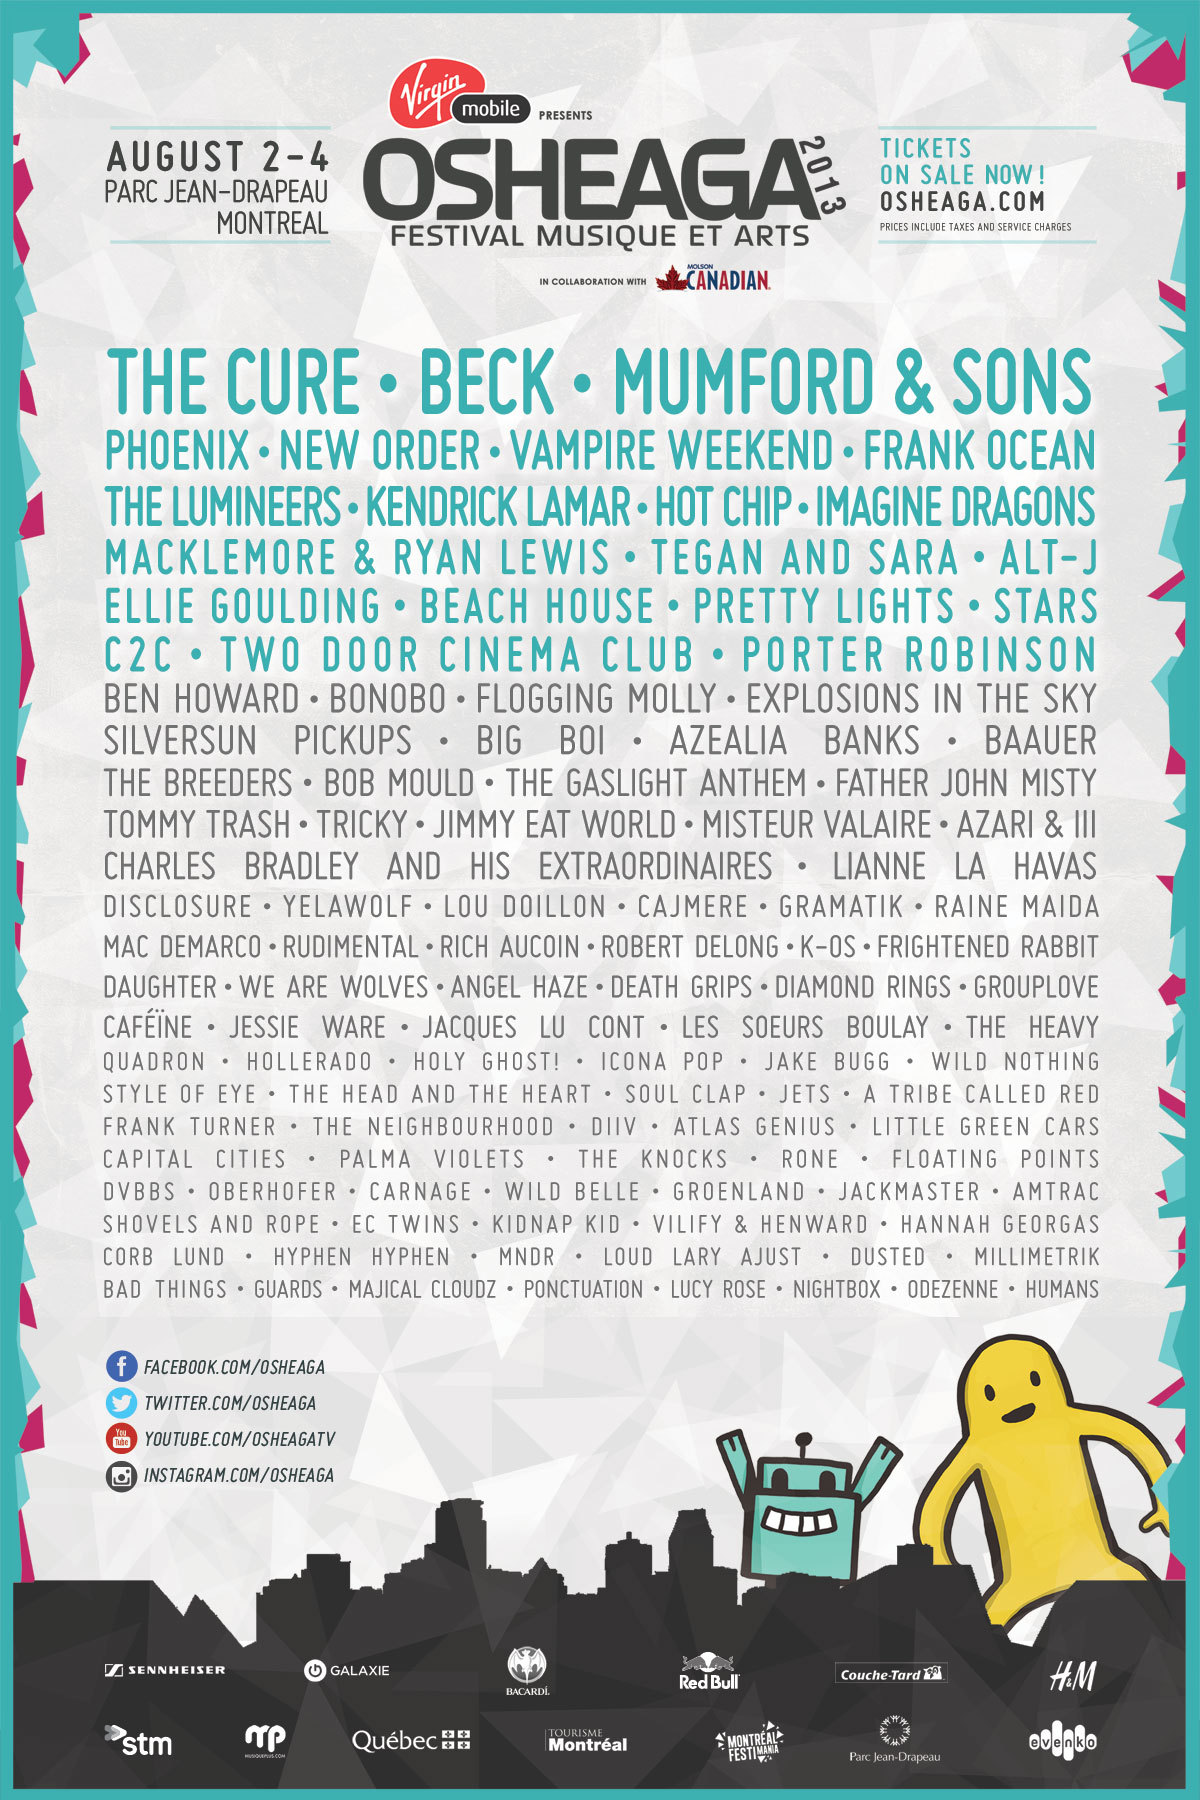 Osheaga is going to be aaaaahhhhmaaazzinnnnggg this year.